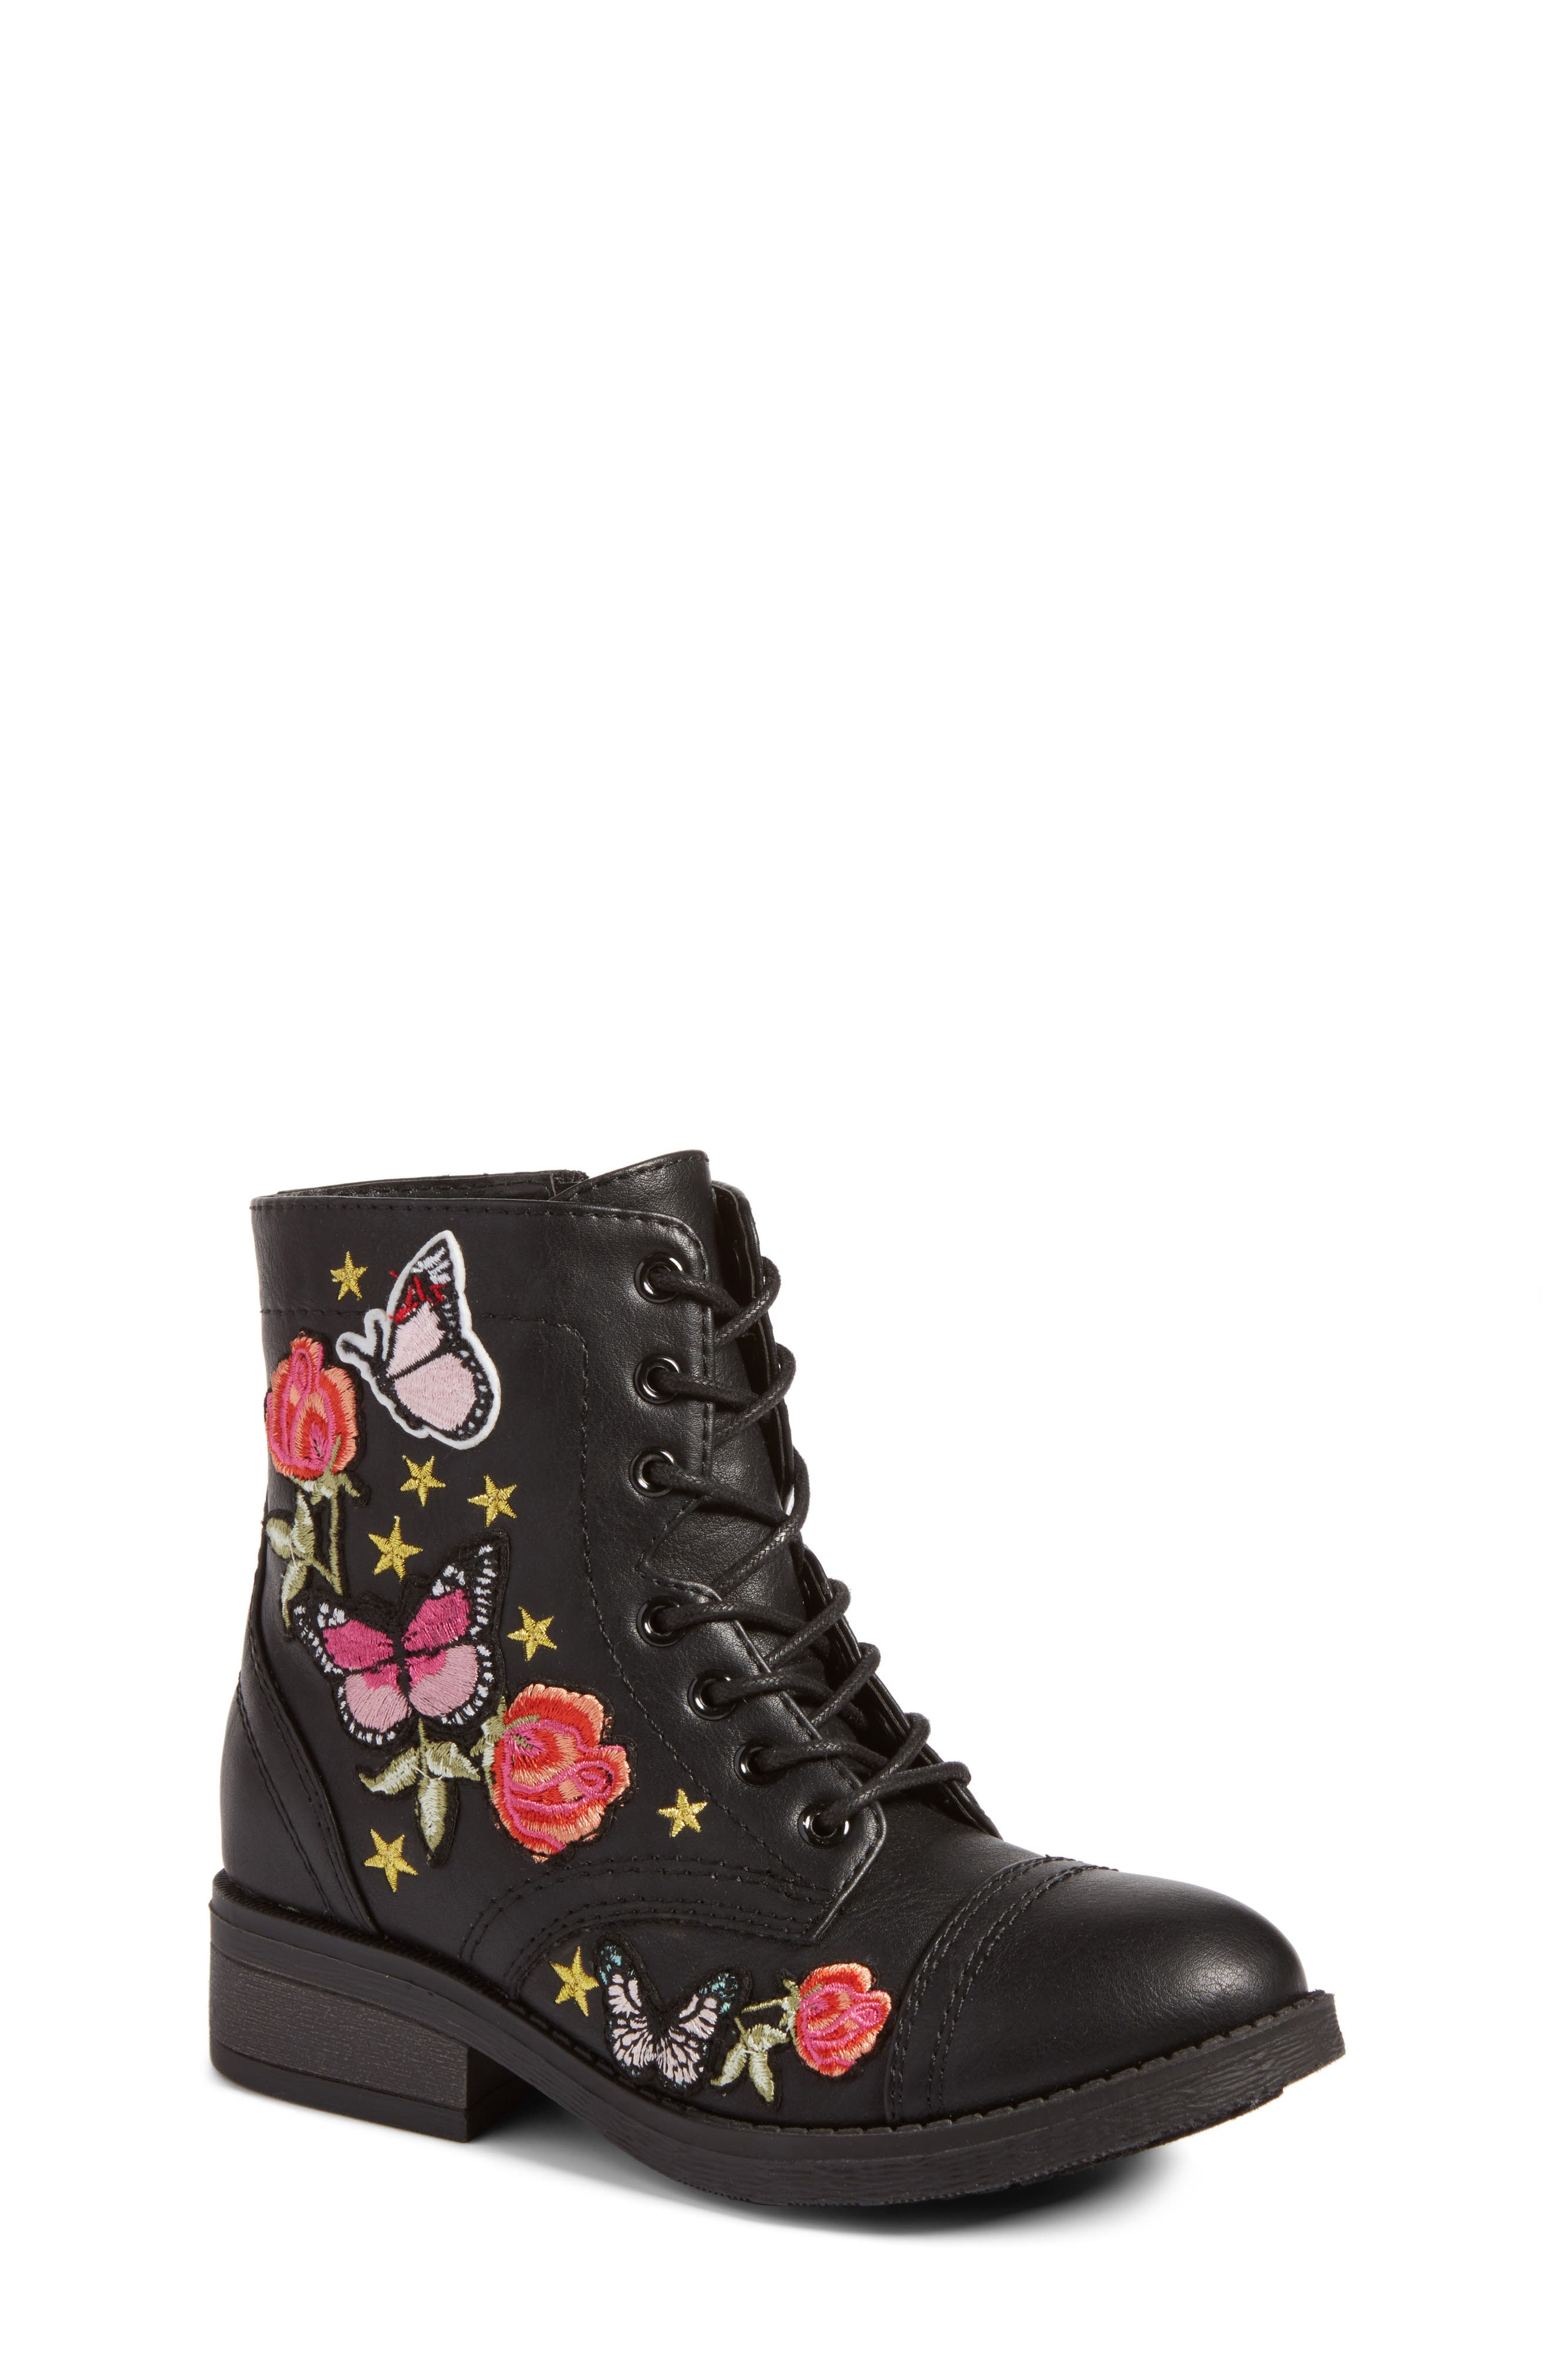 Roaring Embroidered Combat Boot,                             Main thumbnail 1, color,                             001